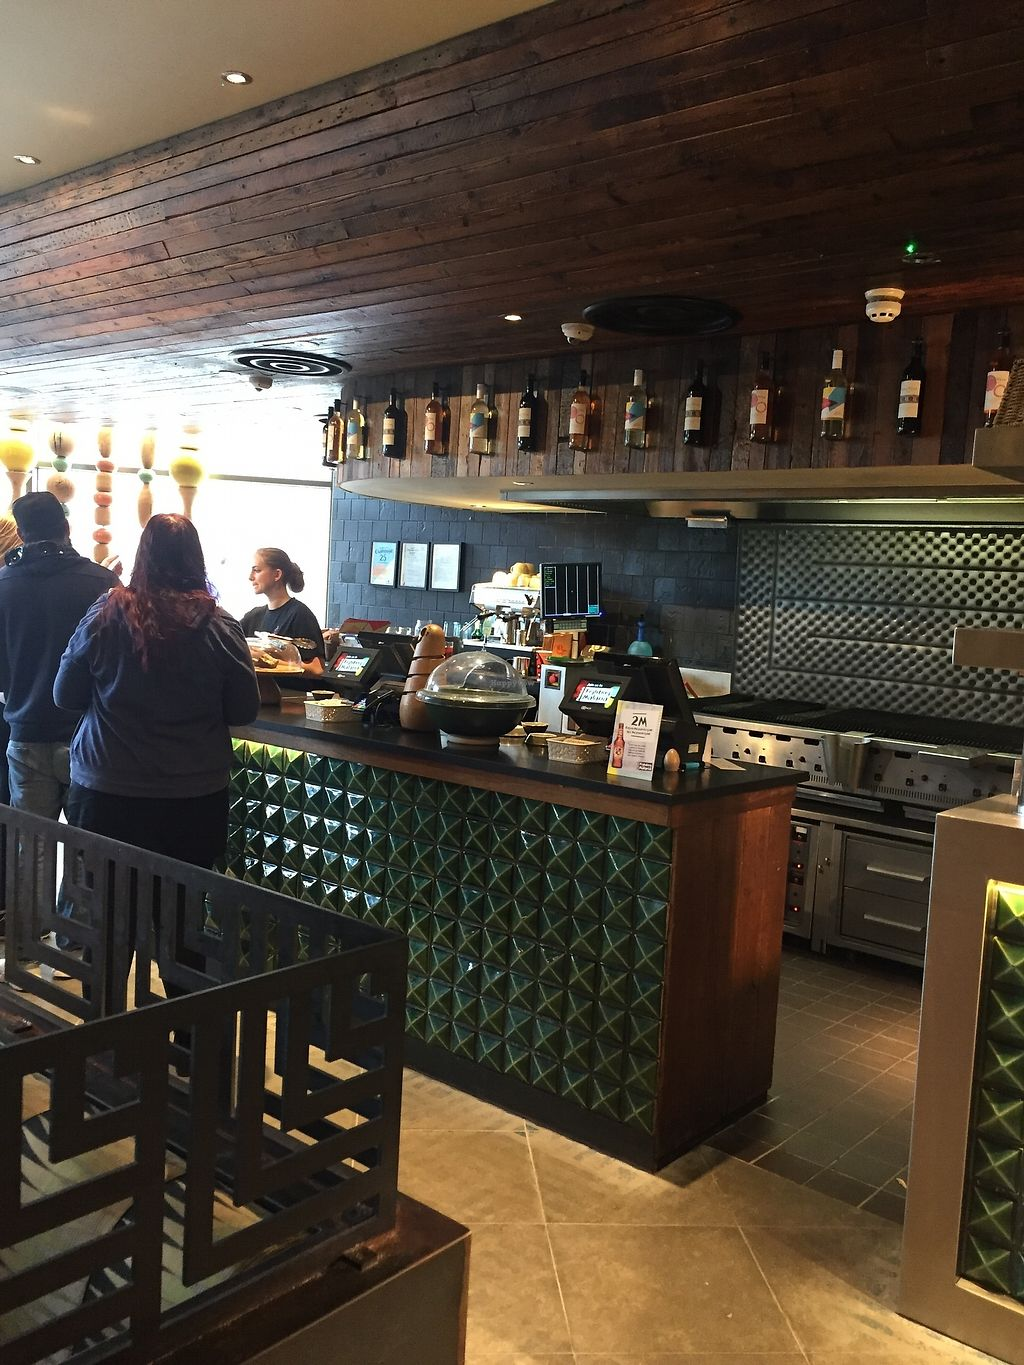 """Photo of Nando's  by <a href=""""/members/profile/TARAMCDONALD"""">TARAMCDONALD</a> <br/>Open kitchen <br/> October 24, 2017  - <a href='/contact/abuse/image/103205/318427'>Report</a>"""